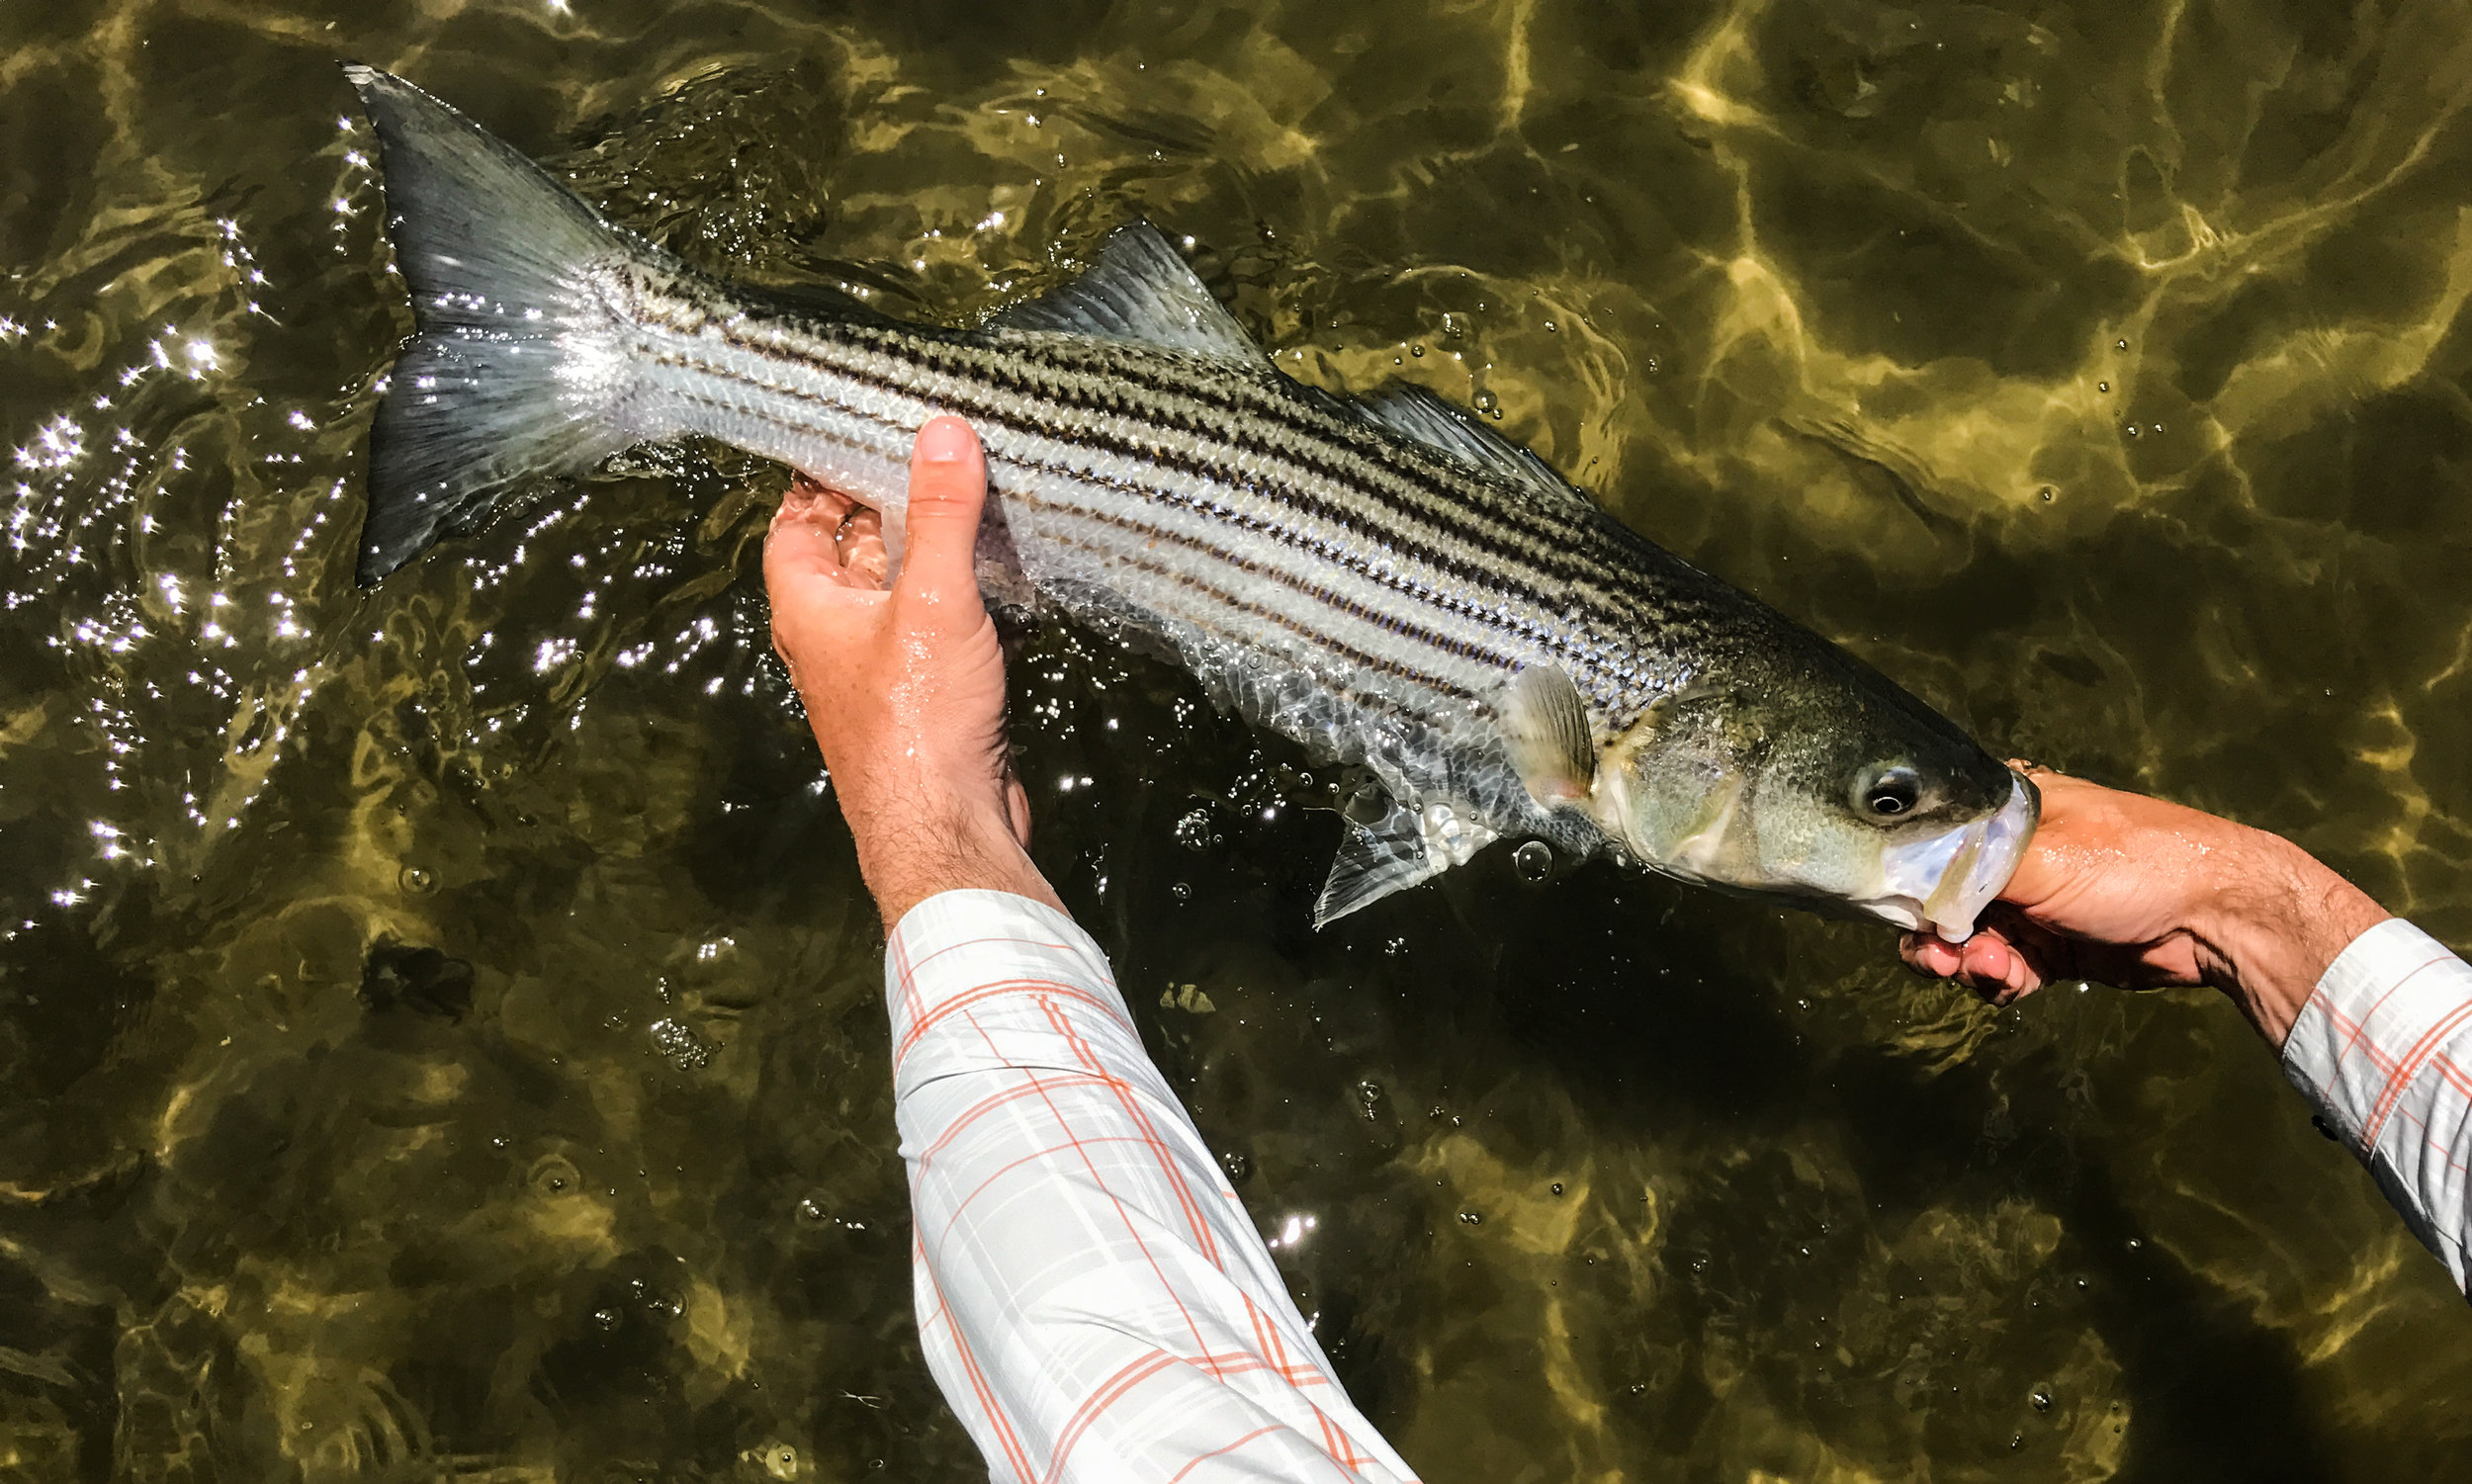 A quality striper on the flats. A fish like this gives you an even better fight when hooked in skinny water.